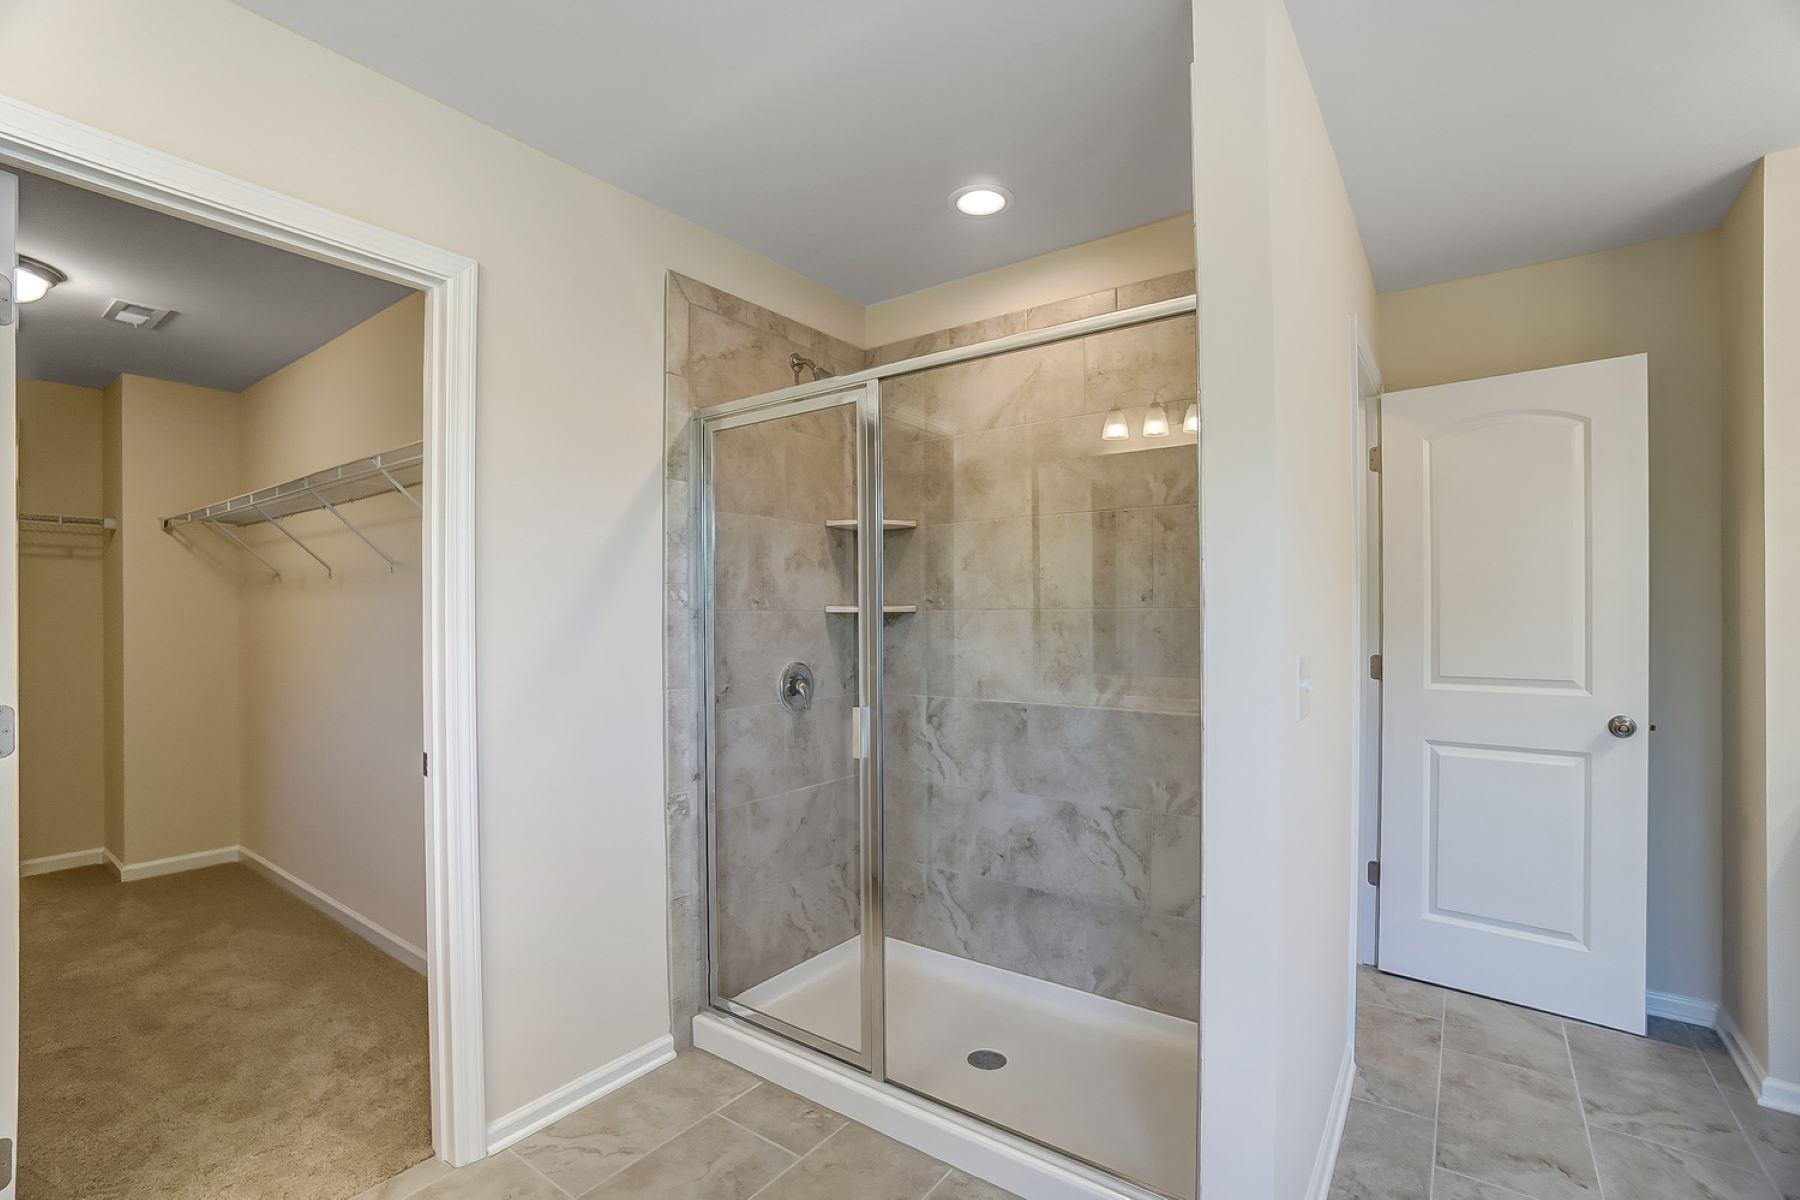 Bathroom featured in the Crosby By Mattamy Homes in Charlotte, NC